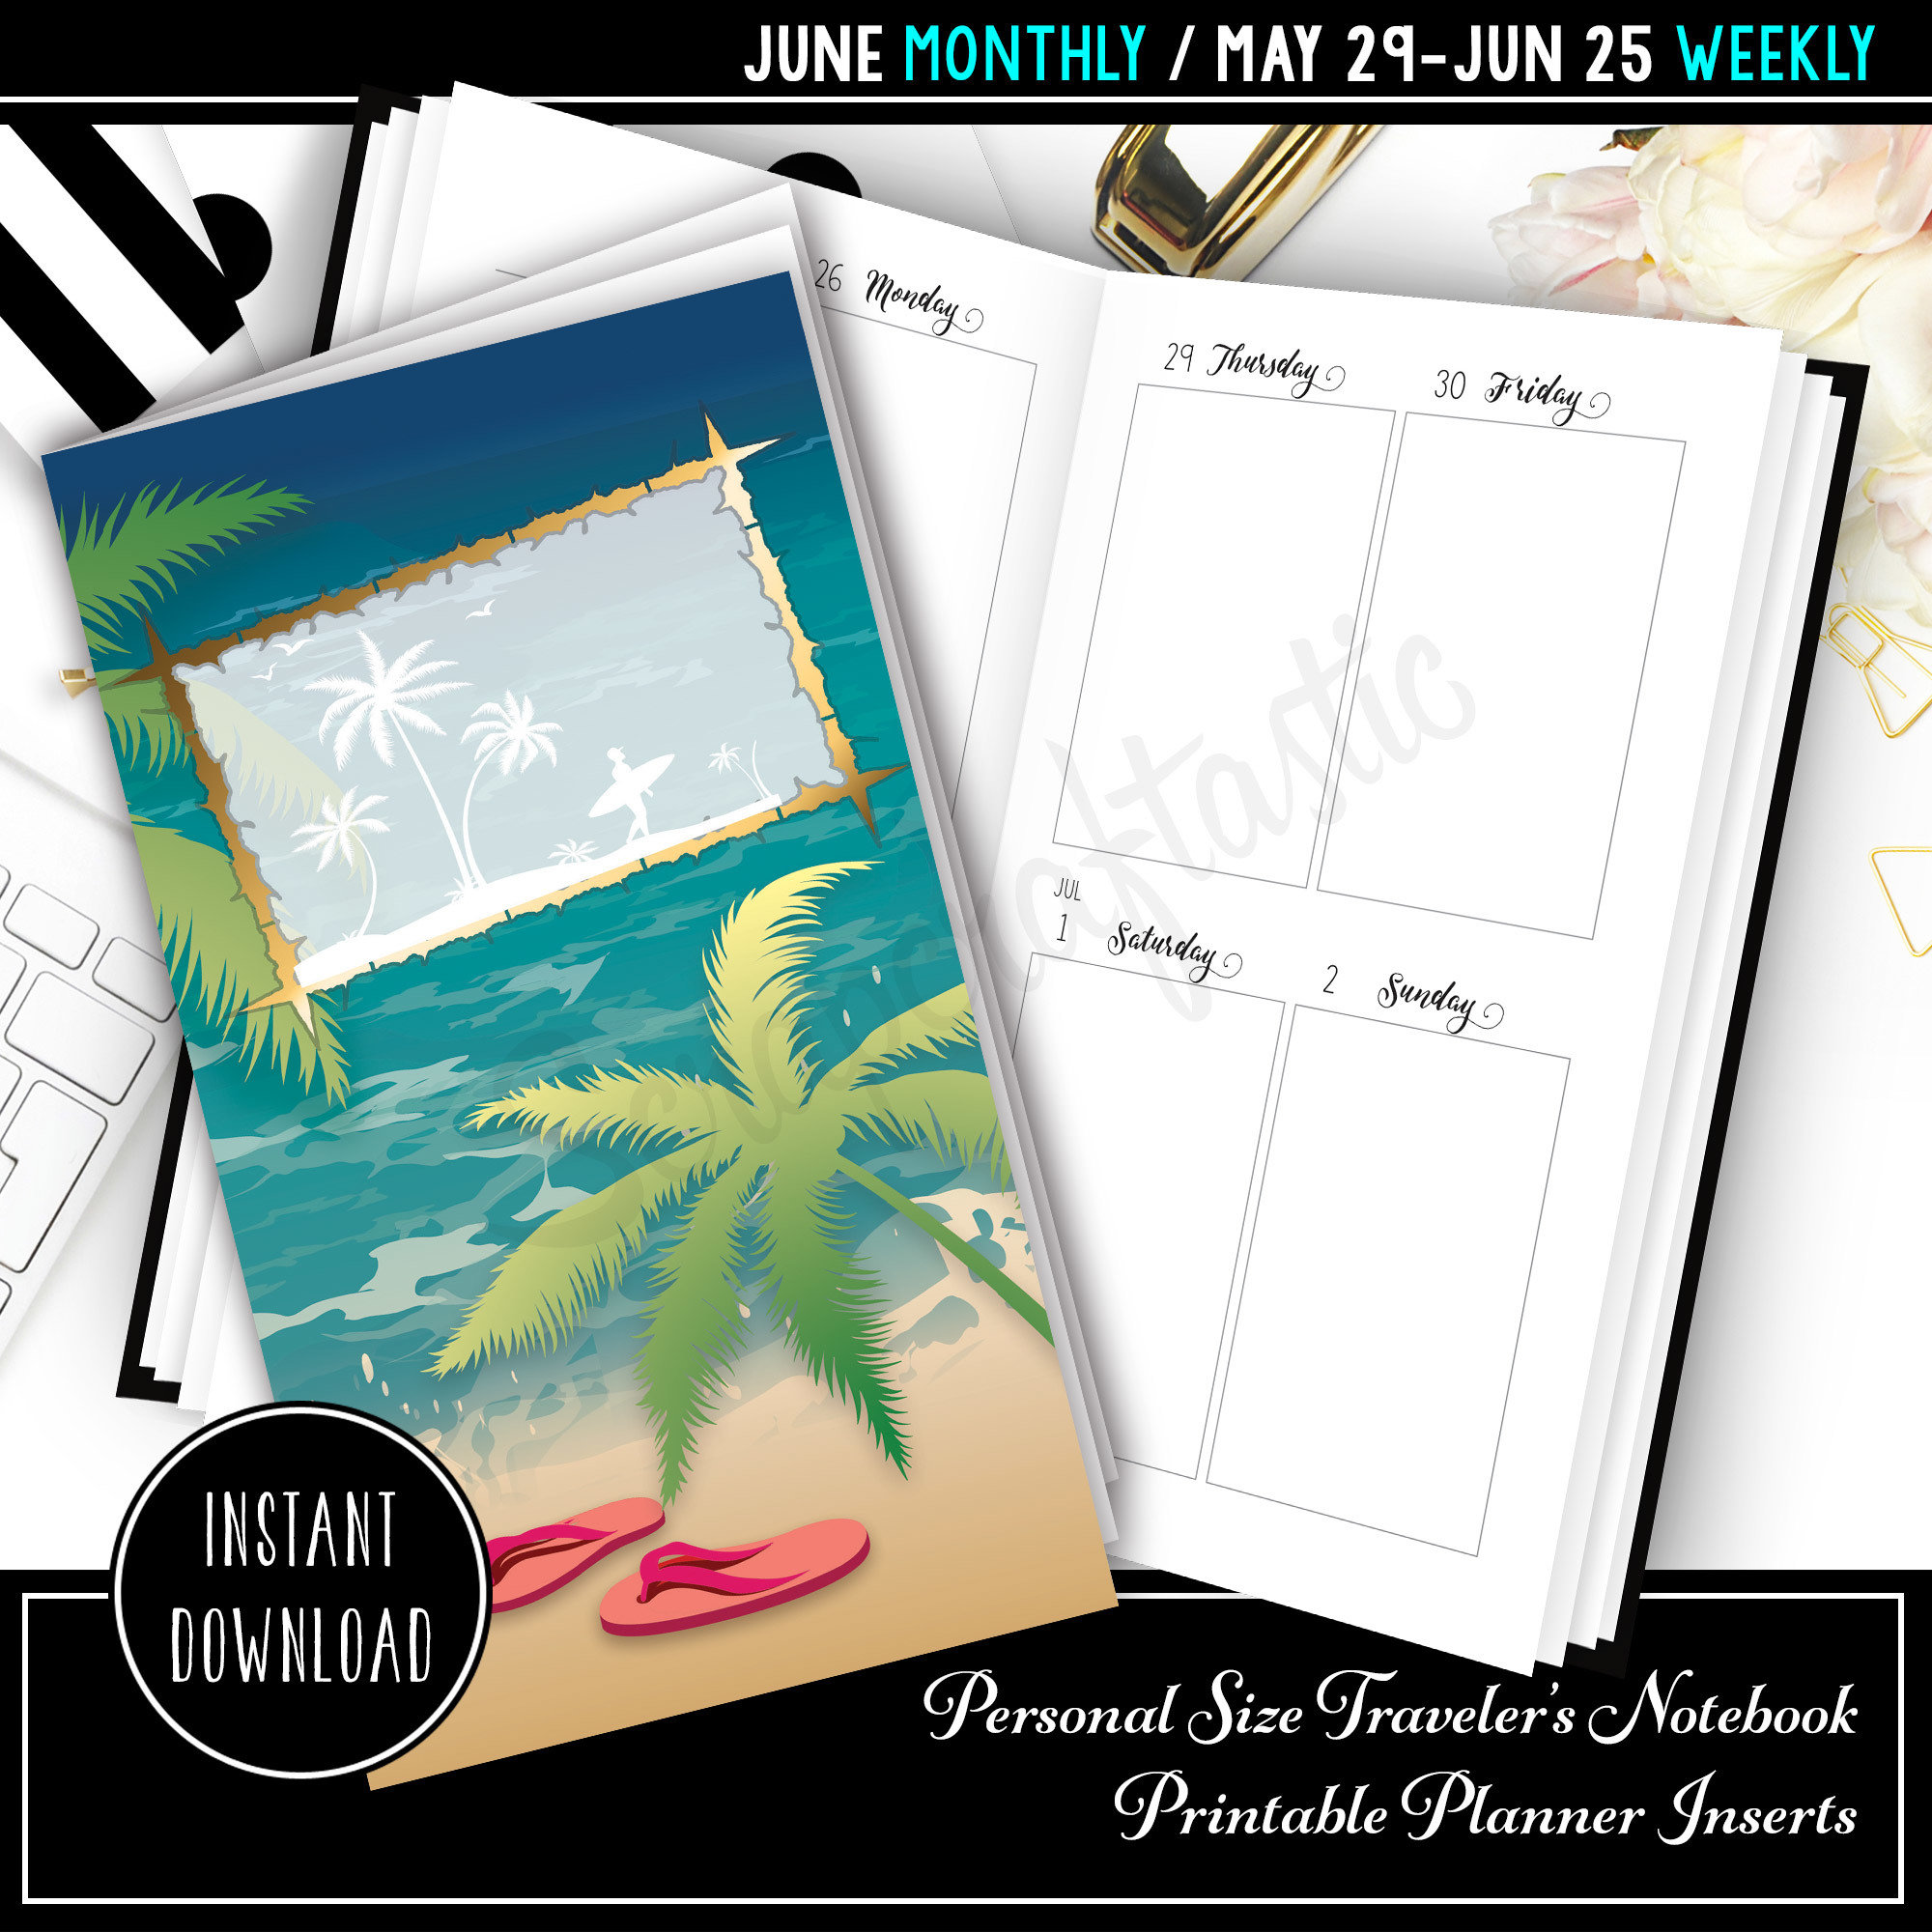 June 2017 Personal Size Traveler's Notebook Printable Planner Inserts 09000